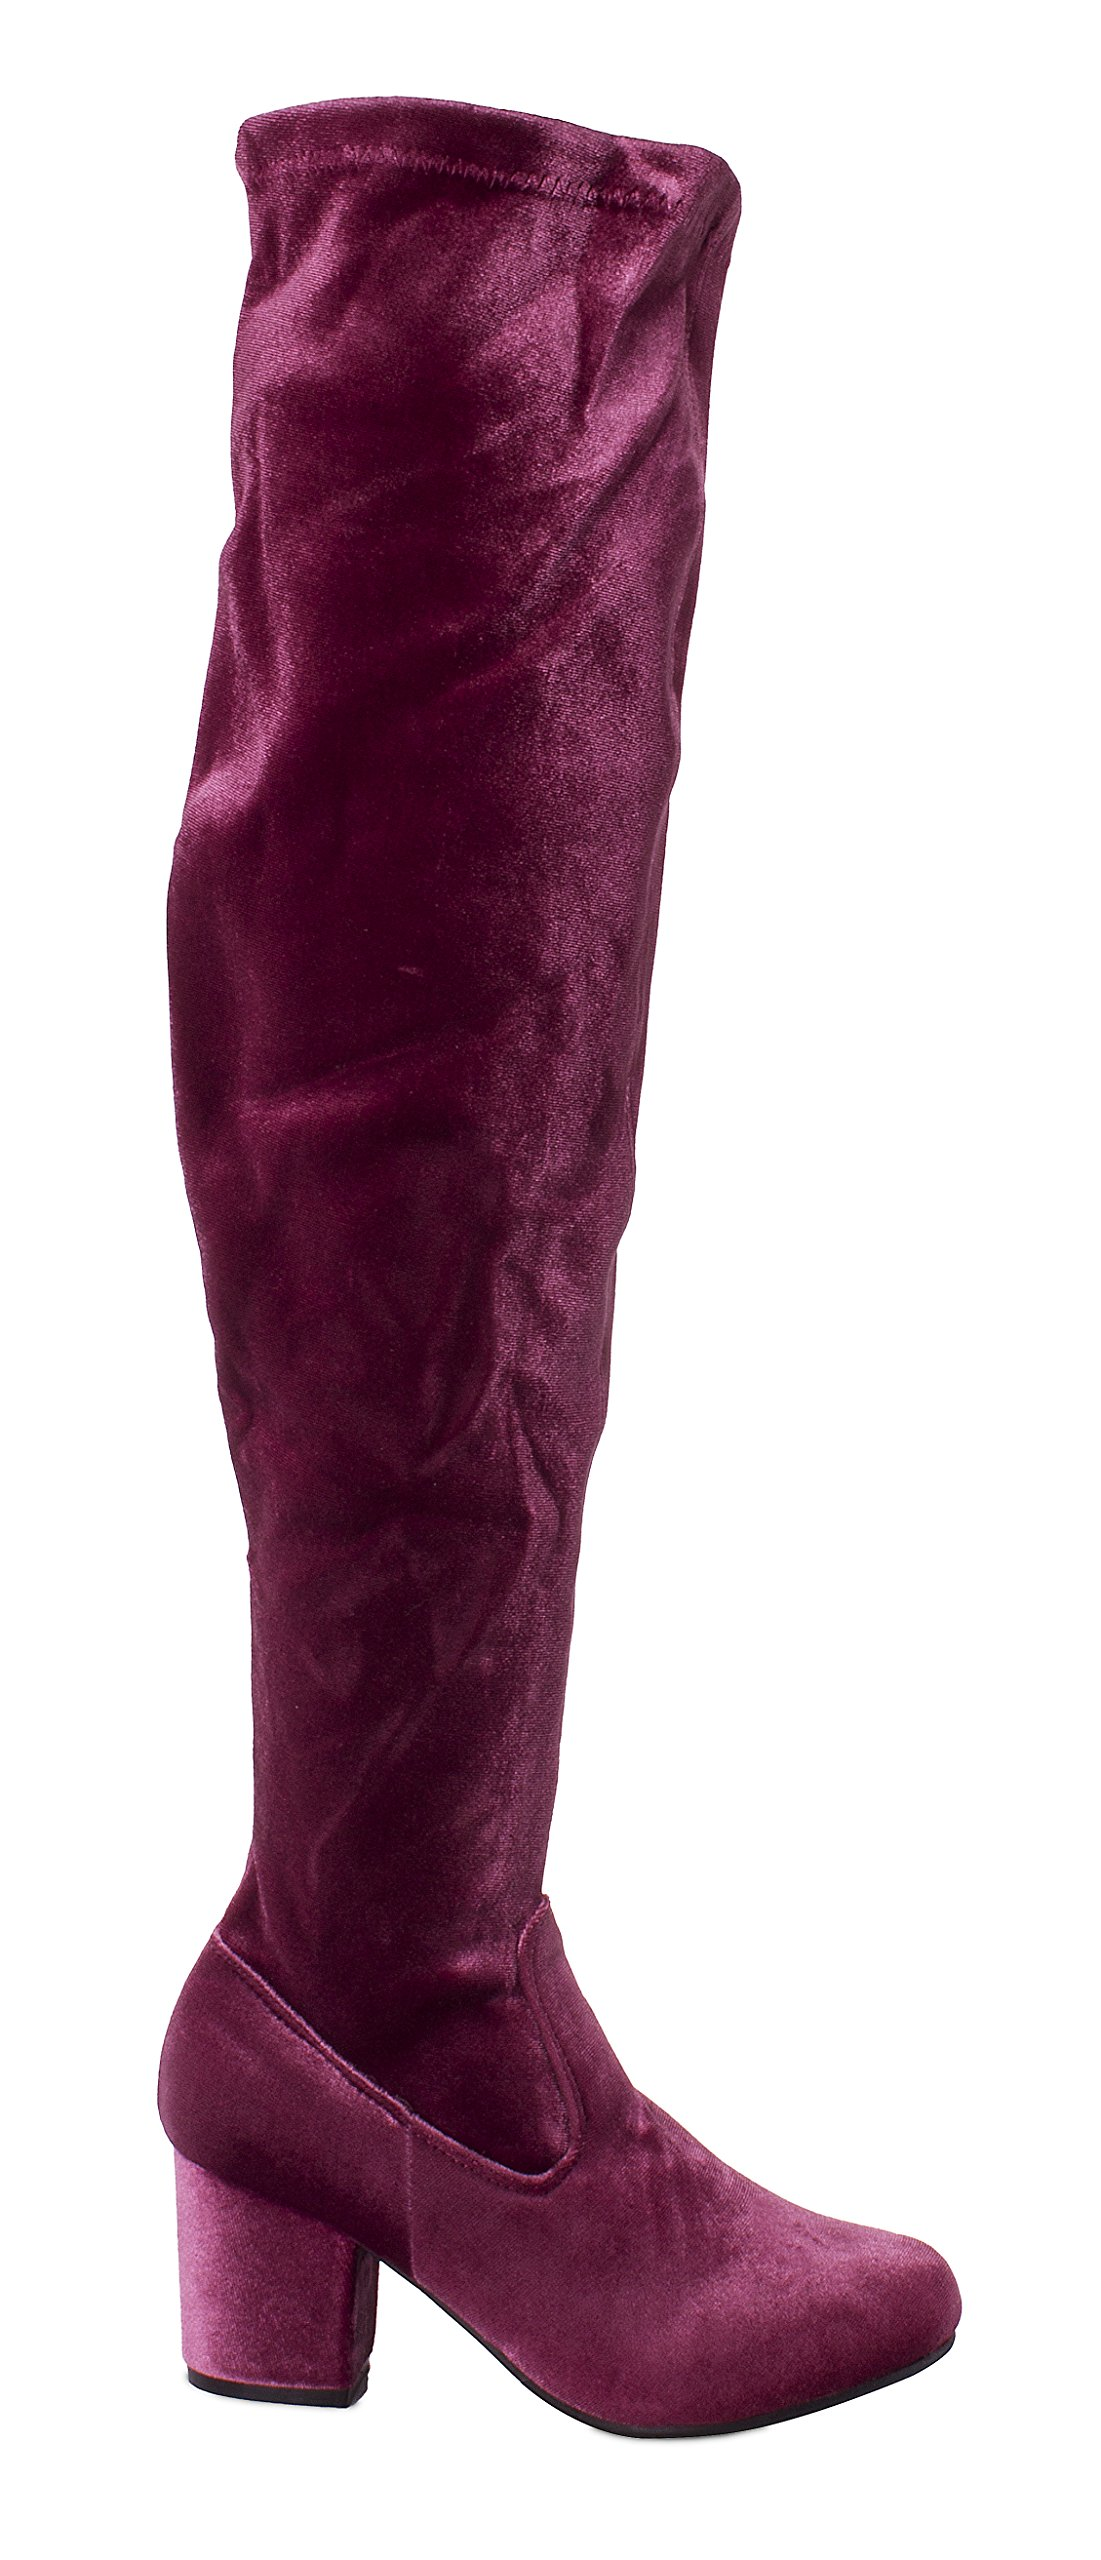 Charles Albert Women's Thigh High Over-The-Knee Chunky Heel Velvet Boots in Mauve Size: 8